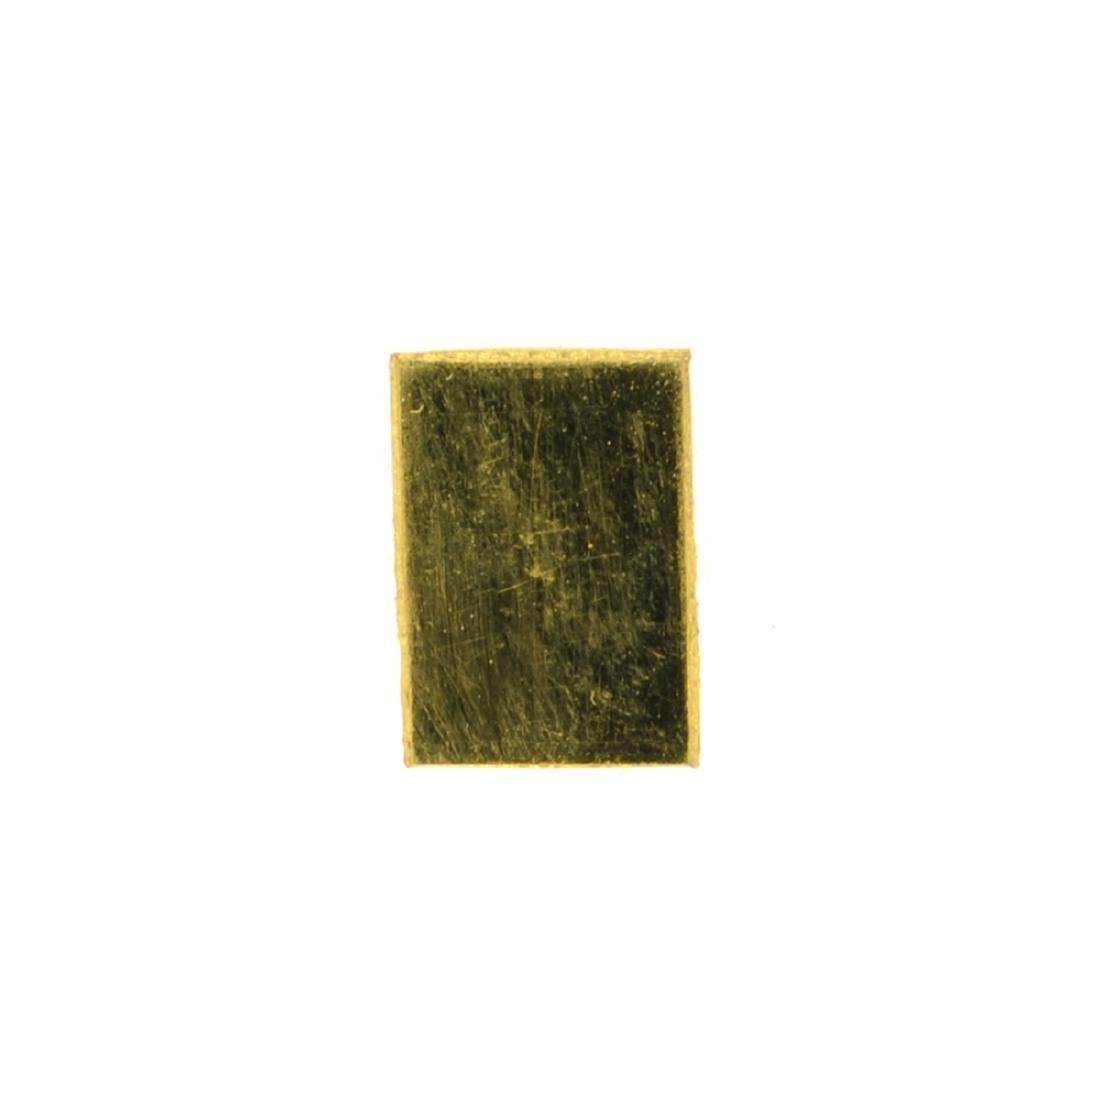 Beautiful 1 gram Valcambi Suisse Fine Gold Bar - 2